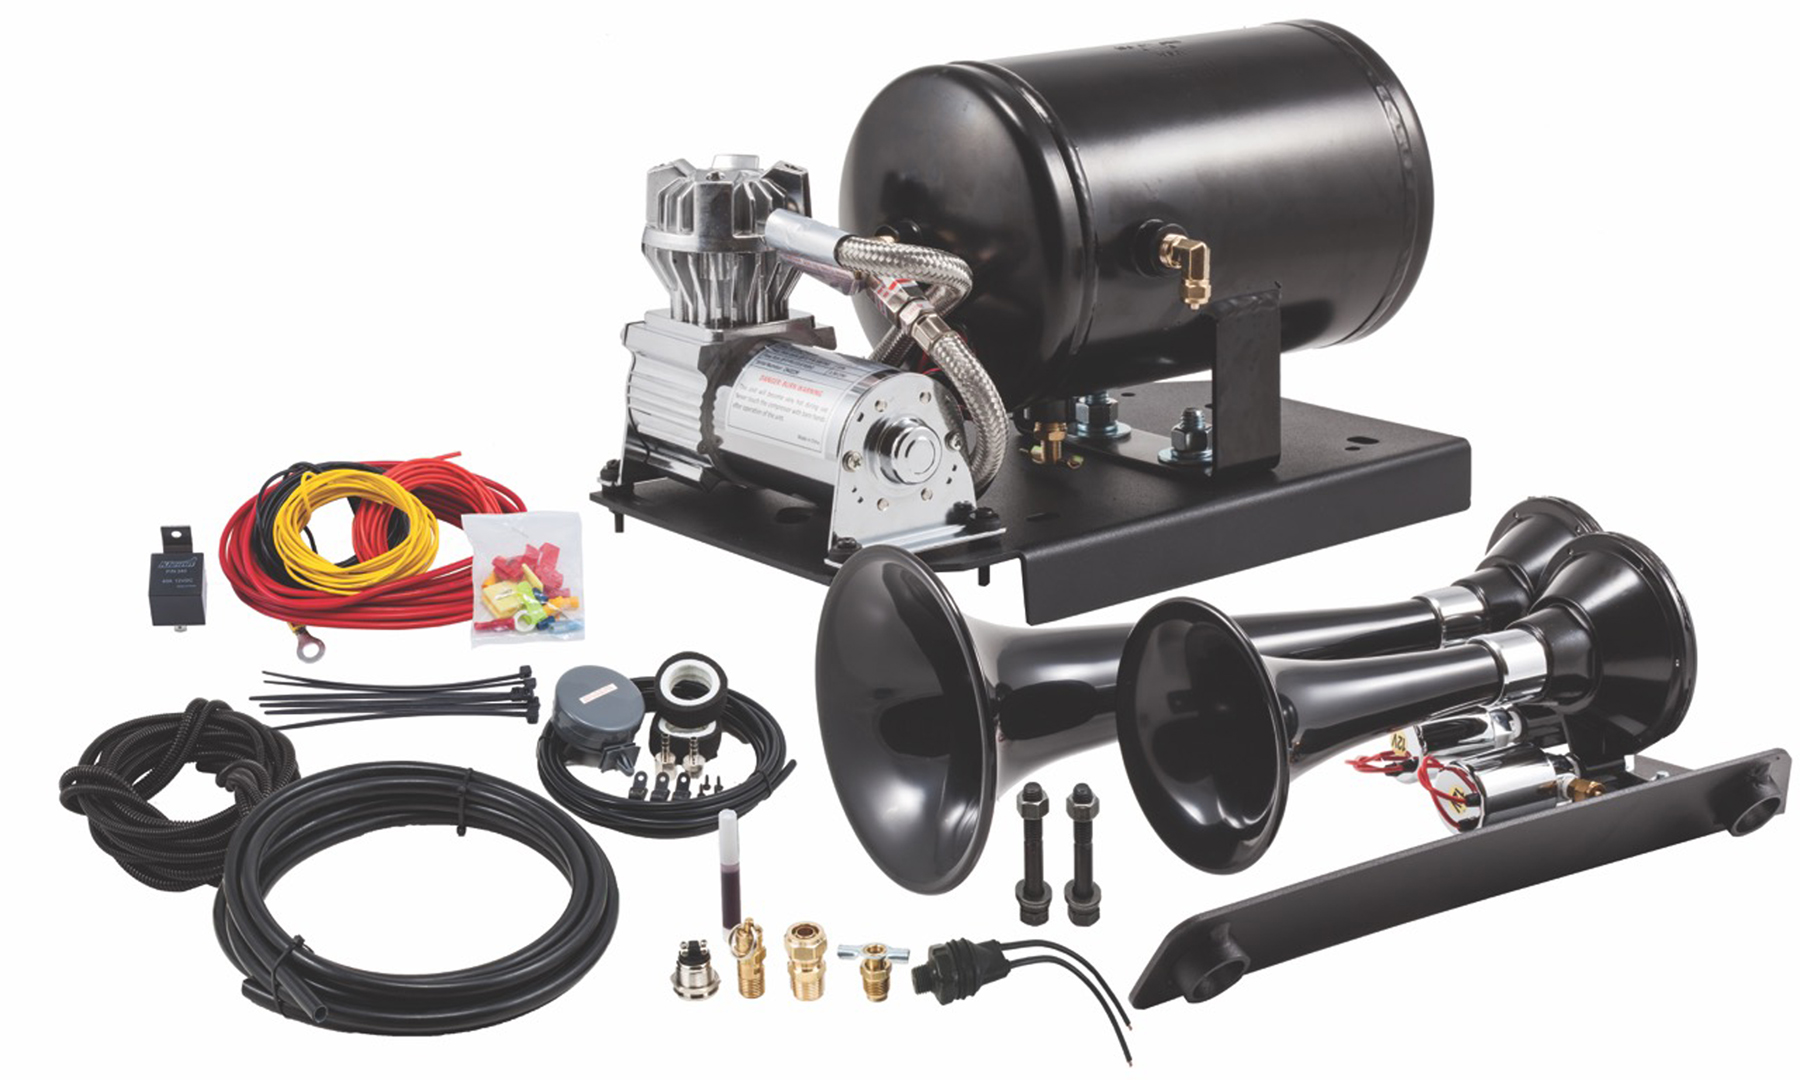 GMTRK-2 Plug-N-Play Under Hood Train Horn Kit - The Chevy Shaker™